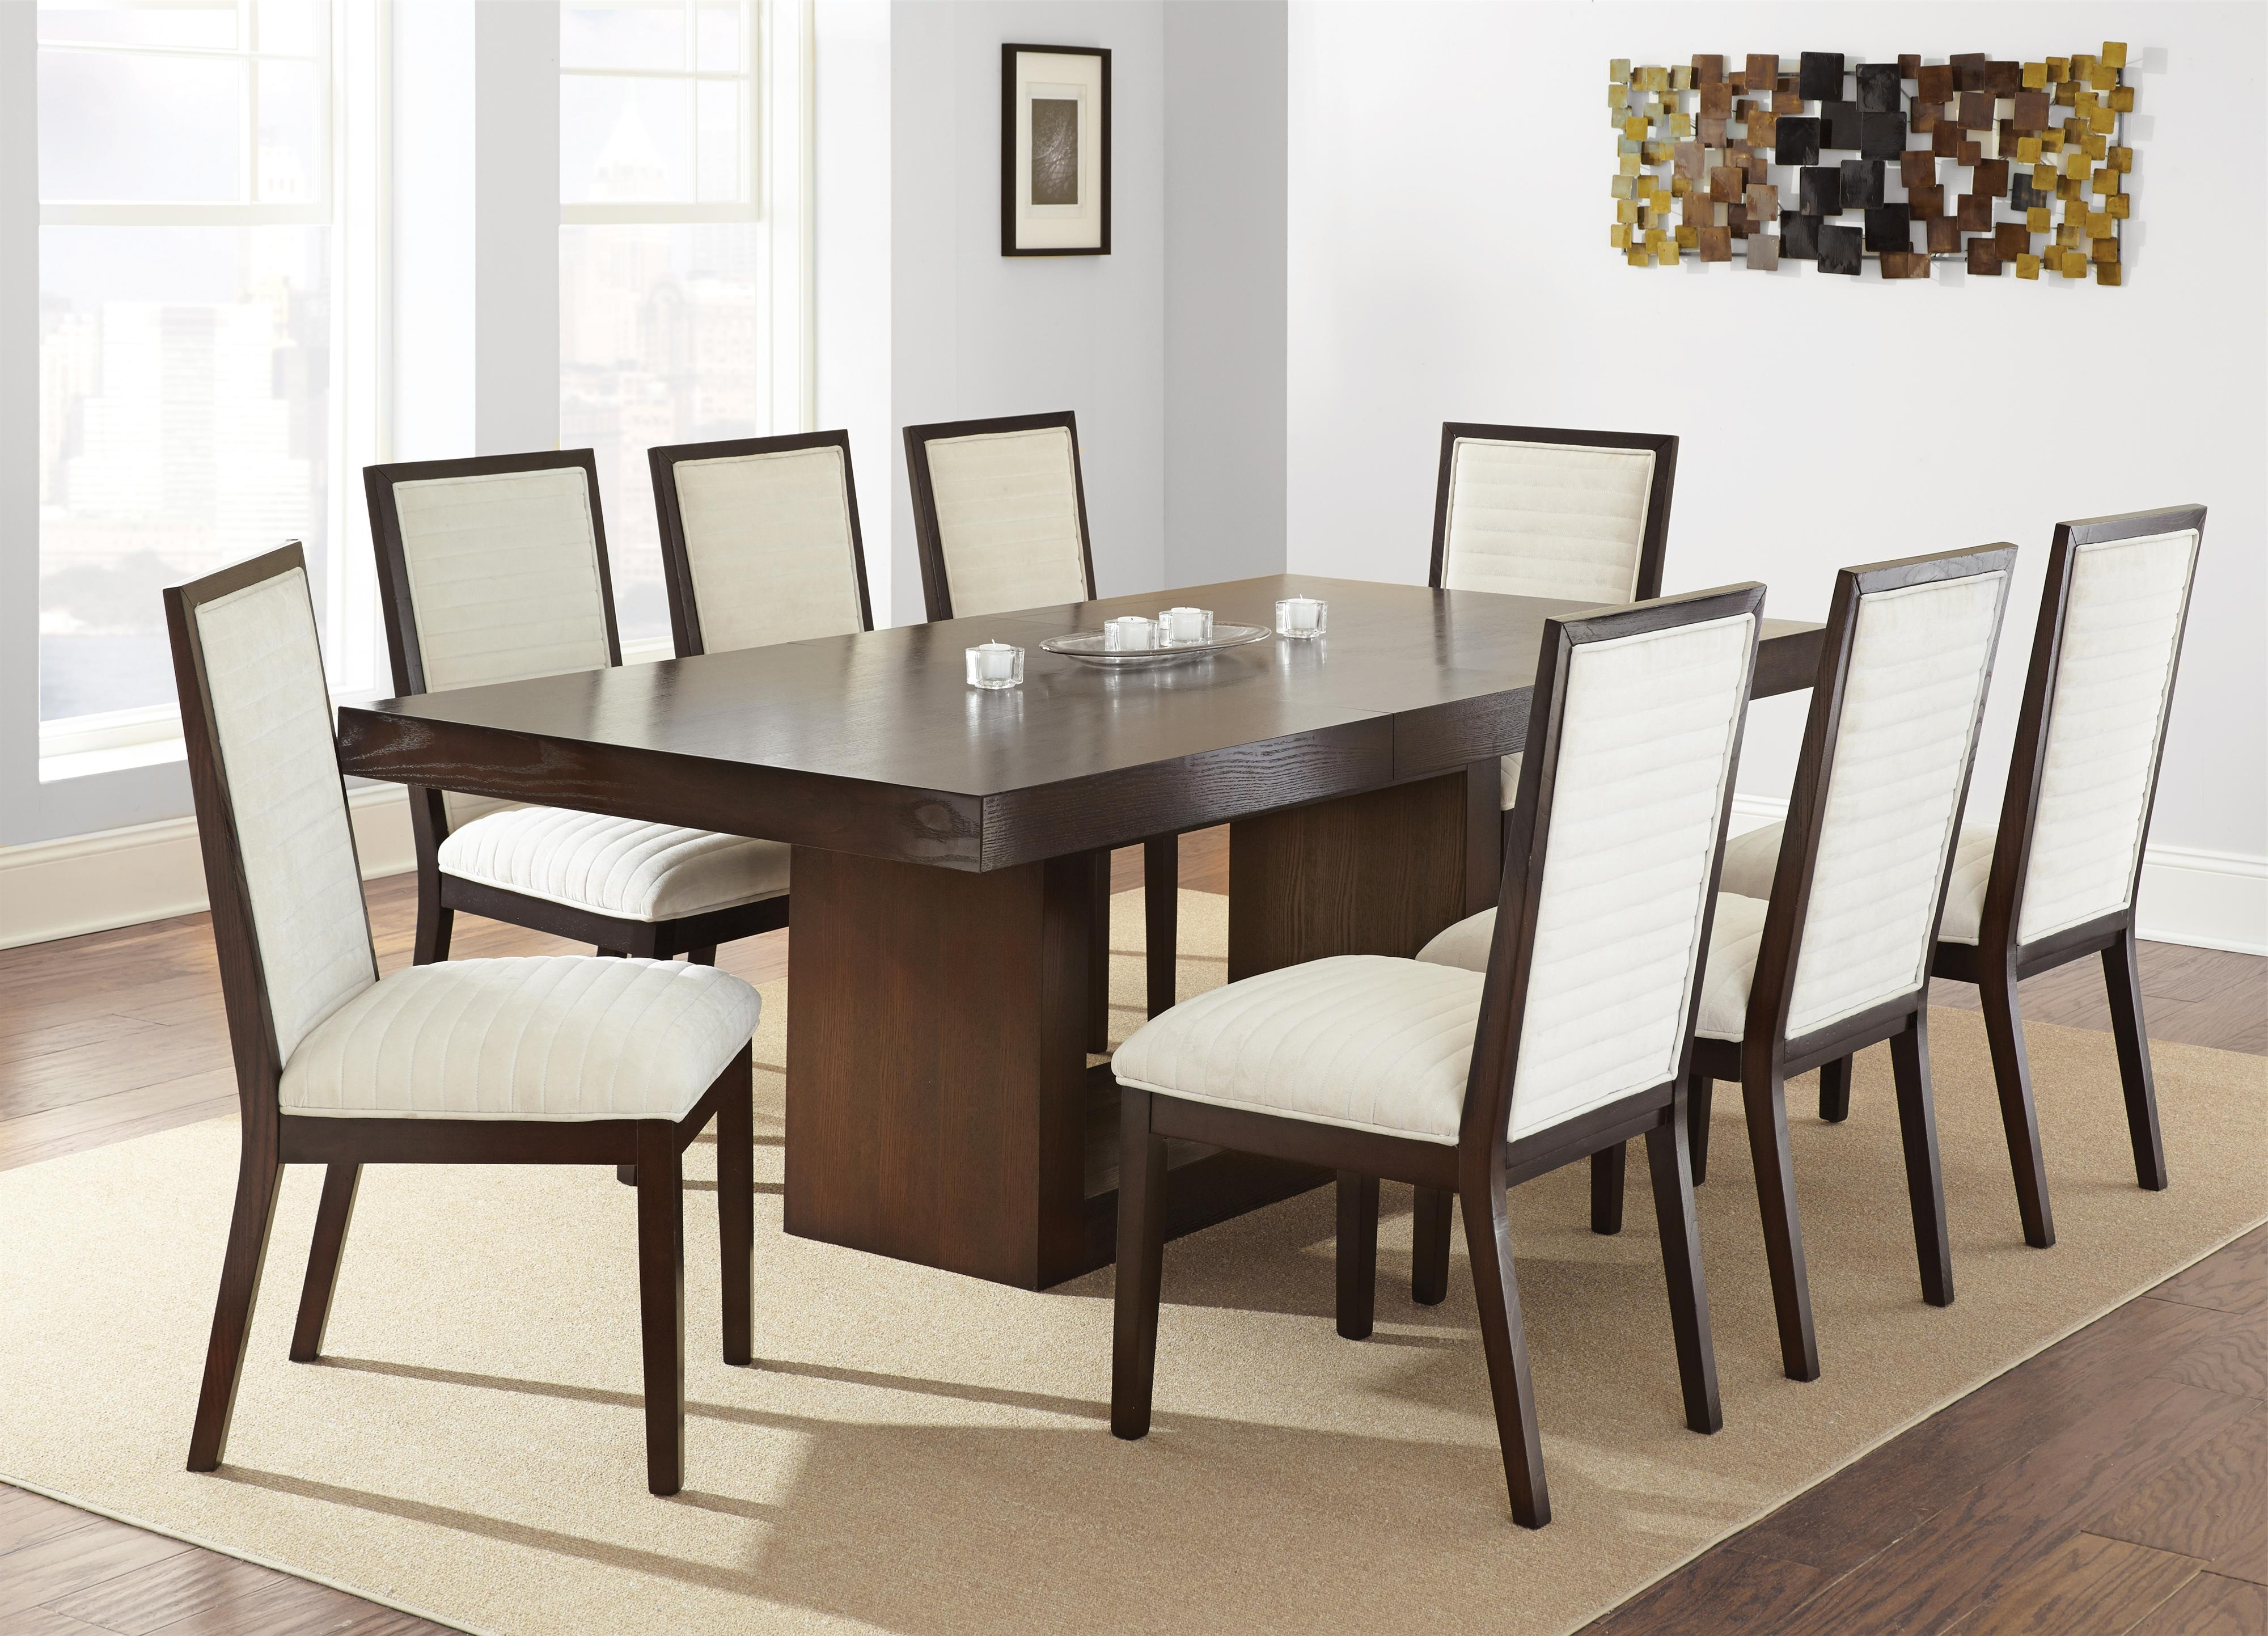 Most Current Jaxon 5 Piece Extension Round Dining Sets With Wood Chairs Regarding Steve Silver Antonio Dining Table With Contemporary Pedestal Base (Gallery 19 of 25)